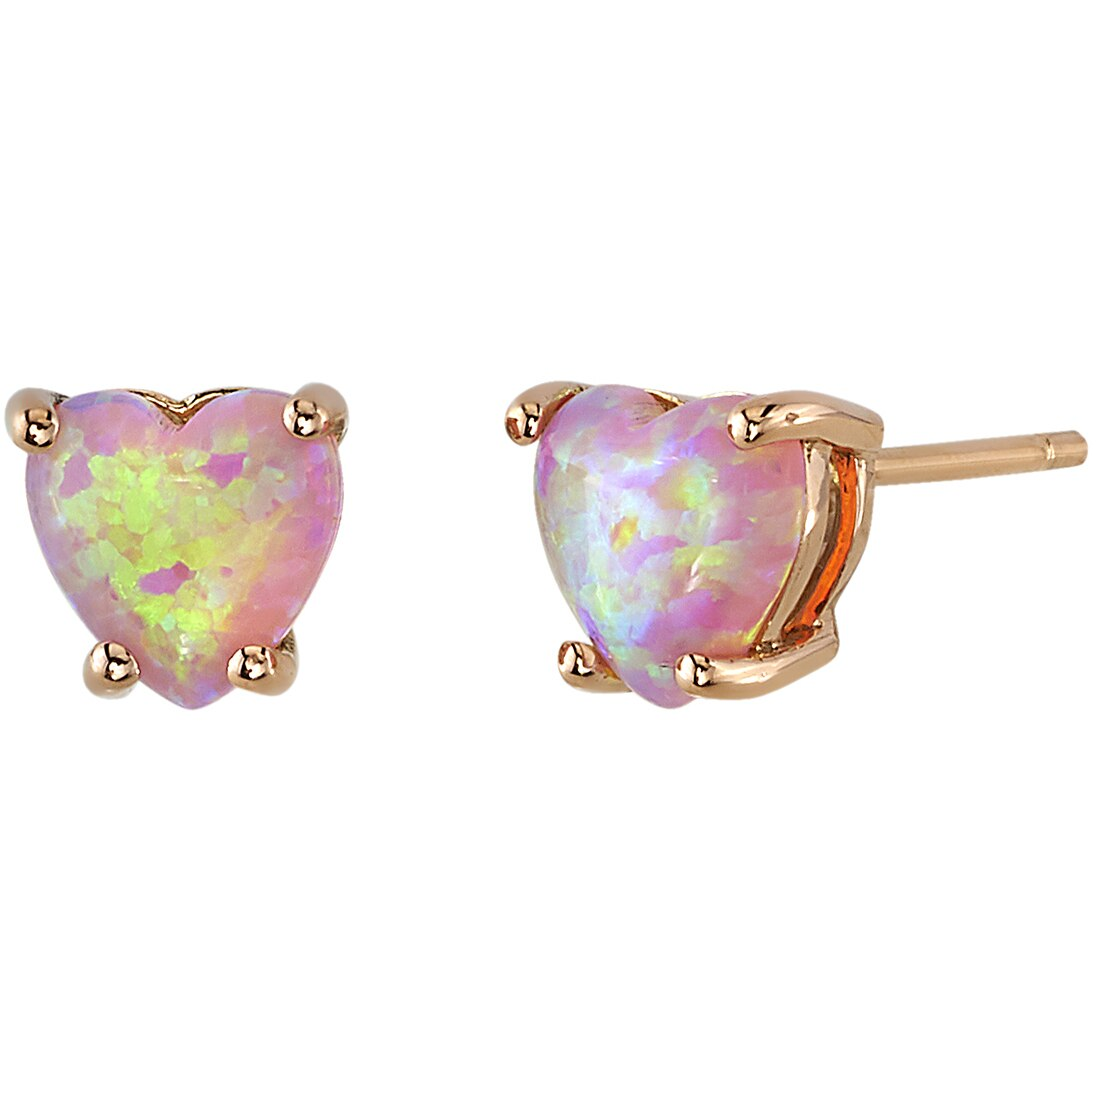 Details about  /Pink Opal Rose Color Anniversary Jewelry 925 Sterling Silver Earrings